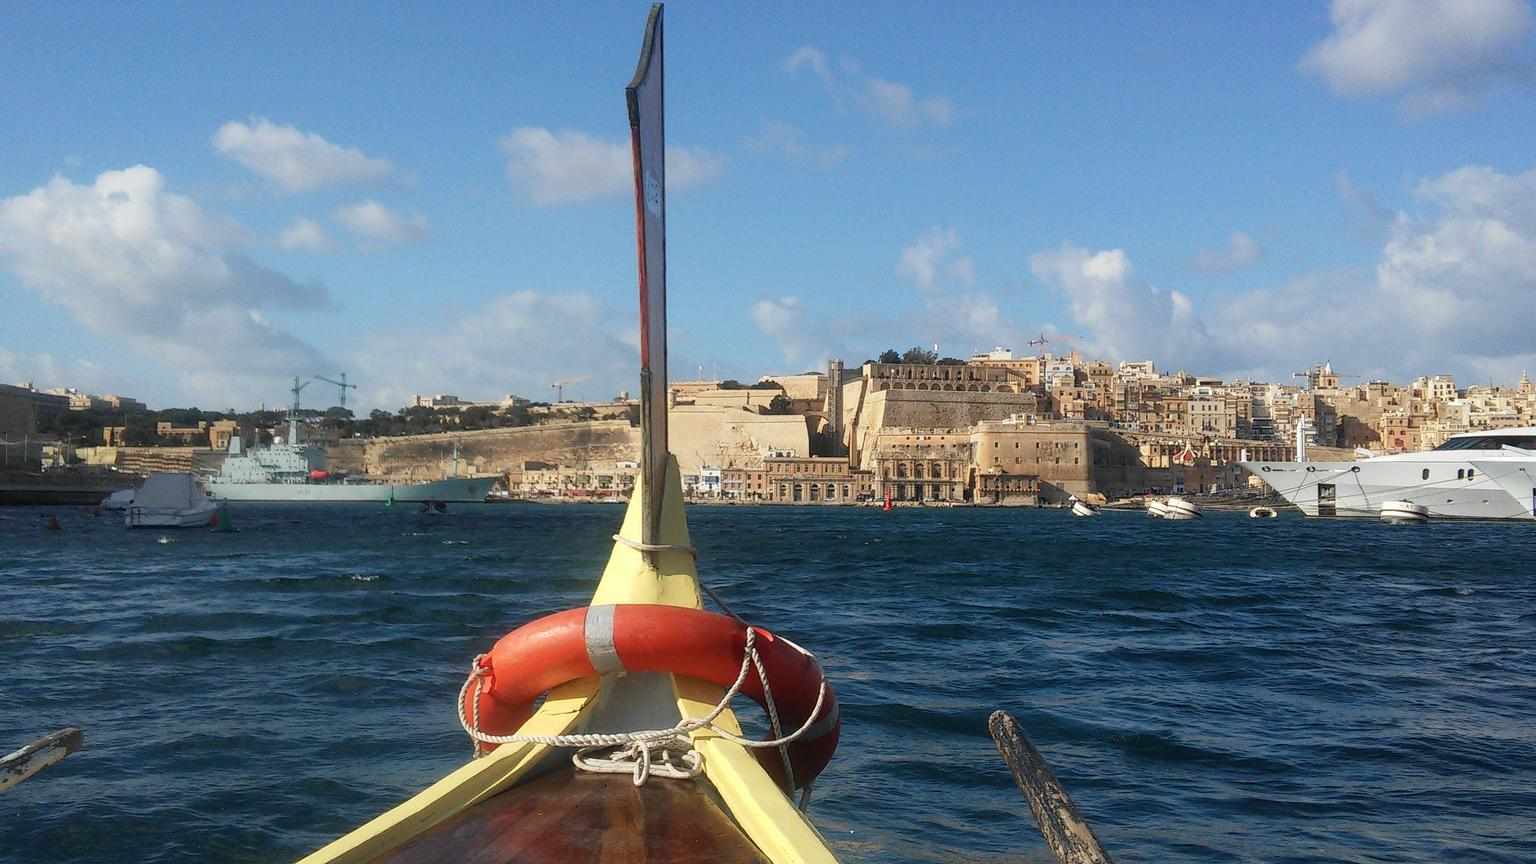 MORE PHOTOS, Malta: The Three Cities and Wine Tasting Tour